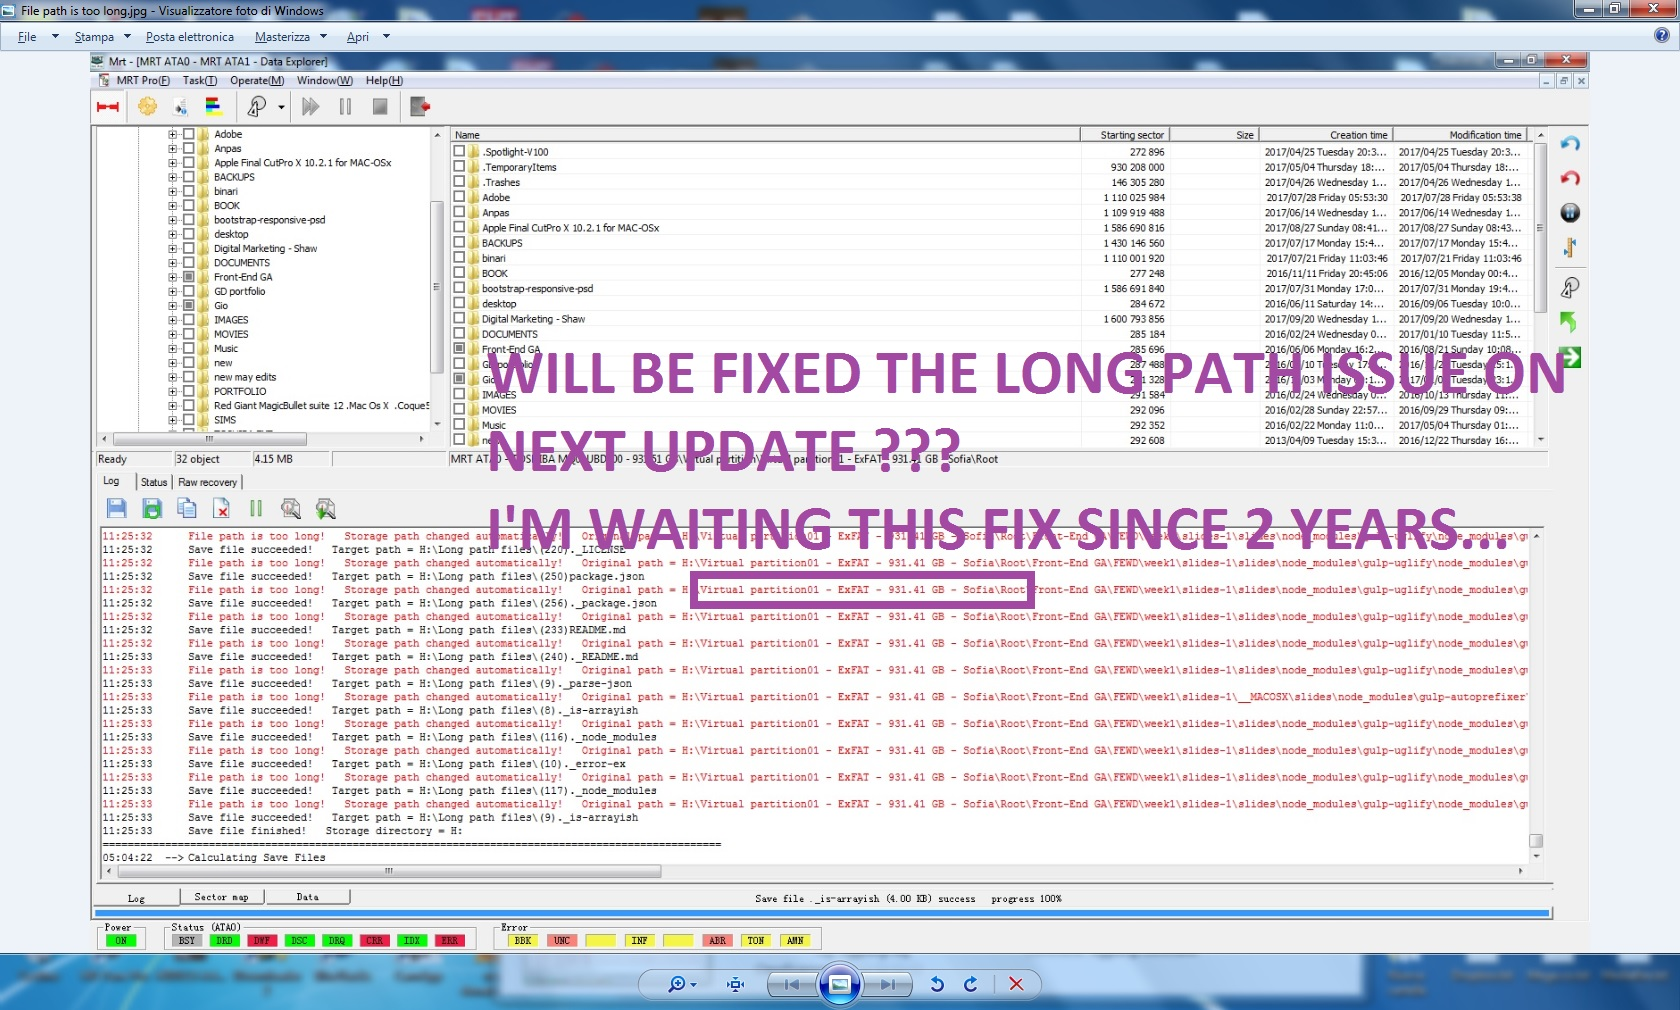 File path is too long.jpg